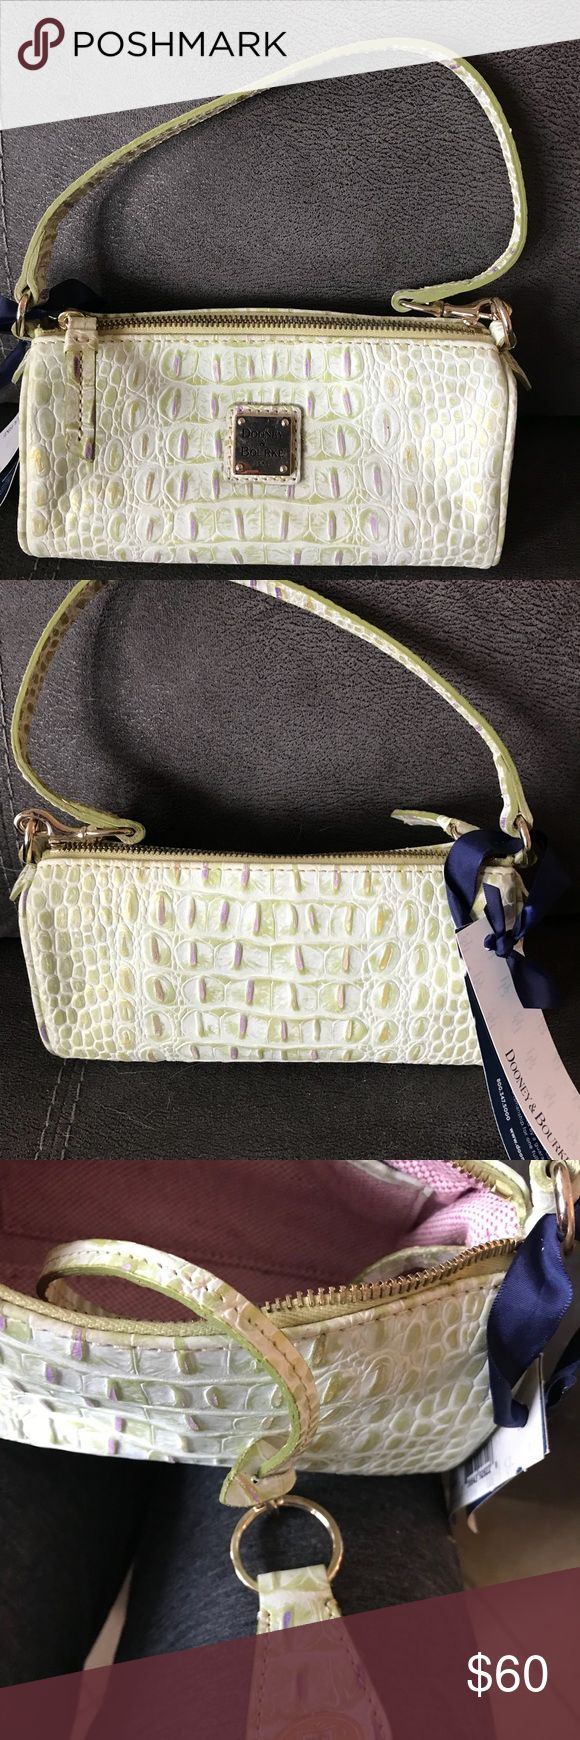 New Dooney & Bourke  Barrell bag purse handbag New with tags, the mini barrel bag, lavender and green flecked ostrich embossed leather, can be converted to a large Wristlet also, comes with a bonus keychain Dooney & Bourke Bags Mini Bags